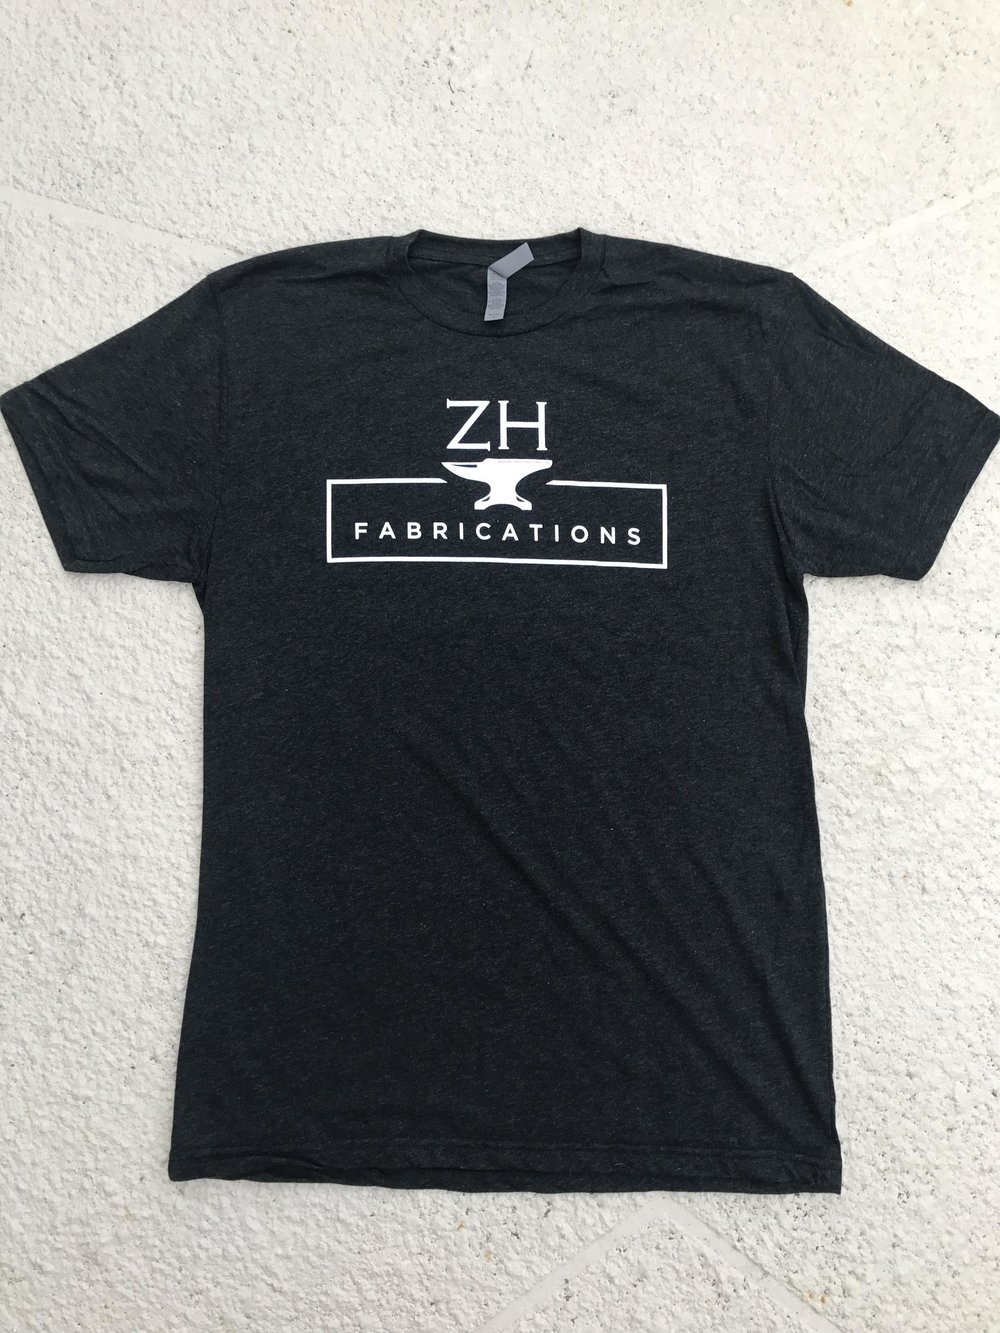 Super awesome ZH Fabrications T-shirt